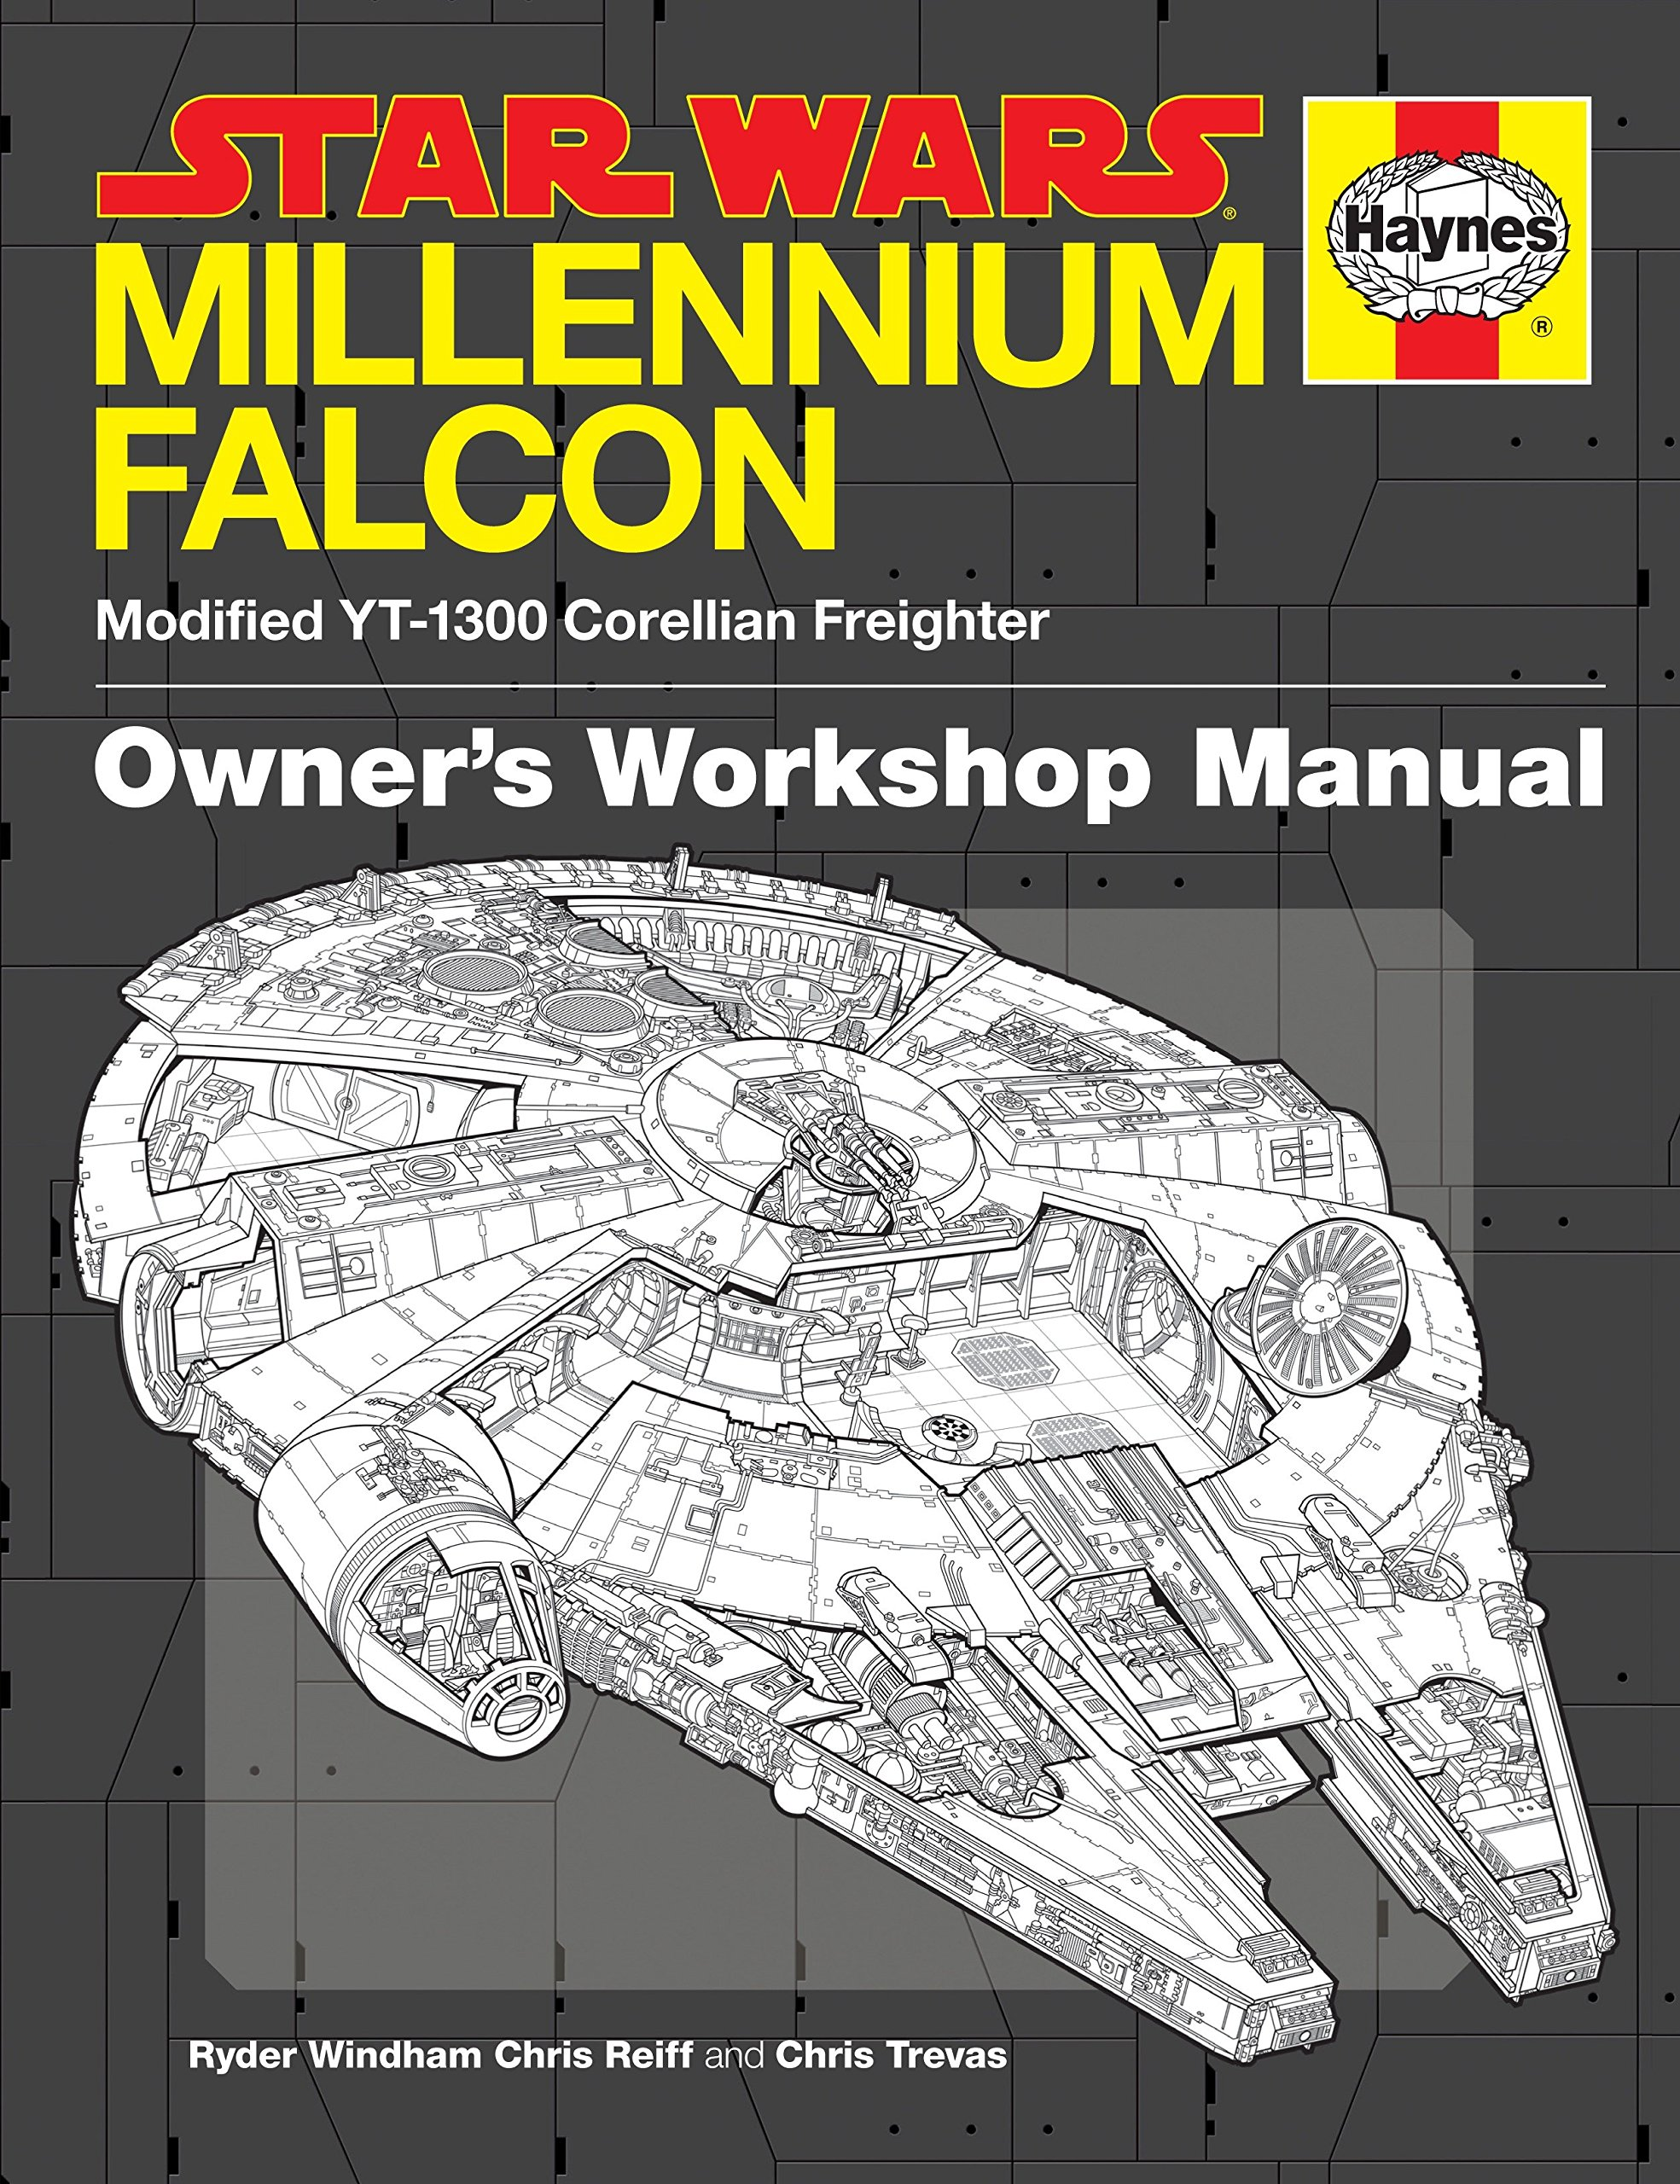 Star Wars Millennium Falcon: Owner's Workshop Manual: Ryder Windham, Chris  Reiff, Chris Trevas: 9780345533043: Amazon.com: Books